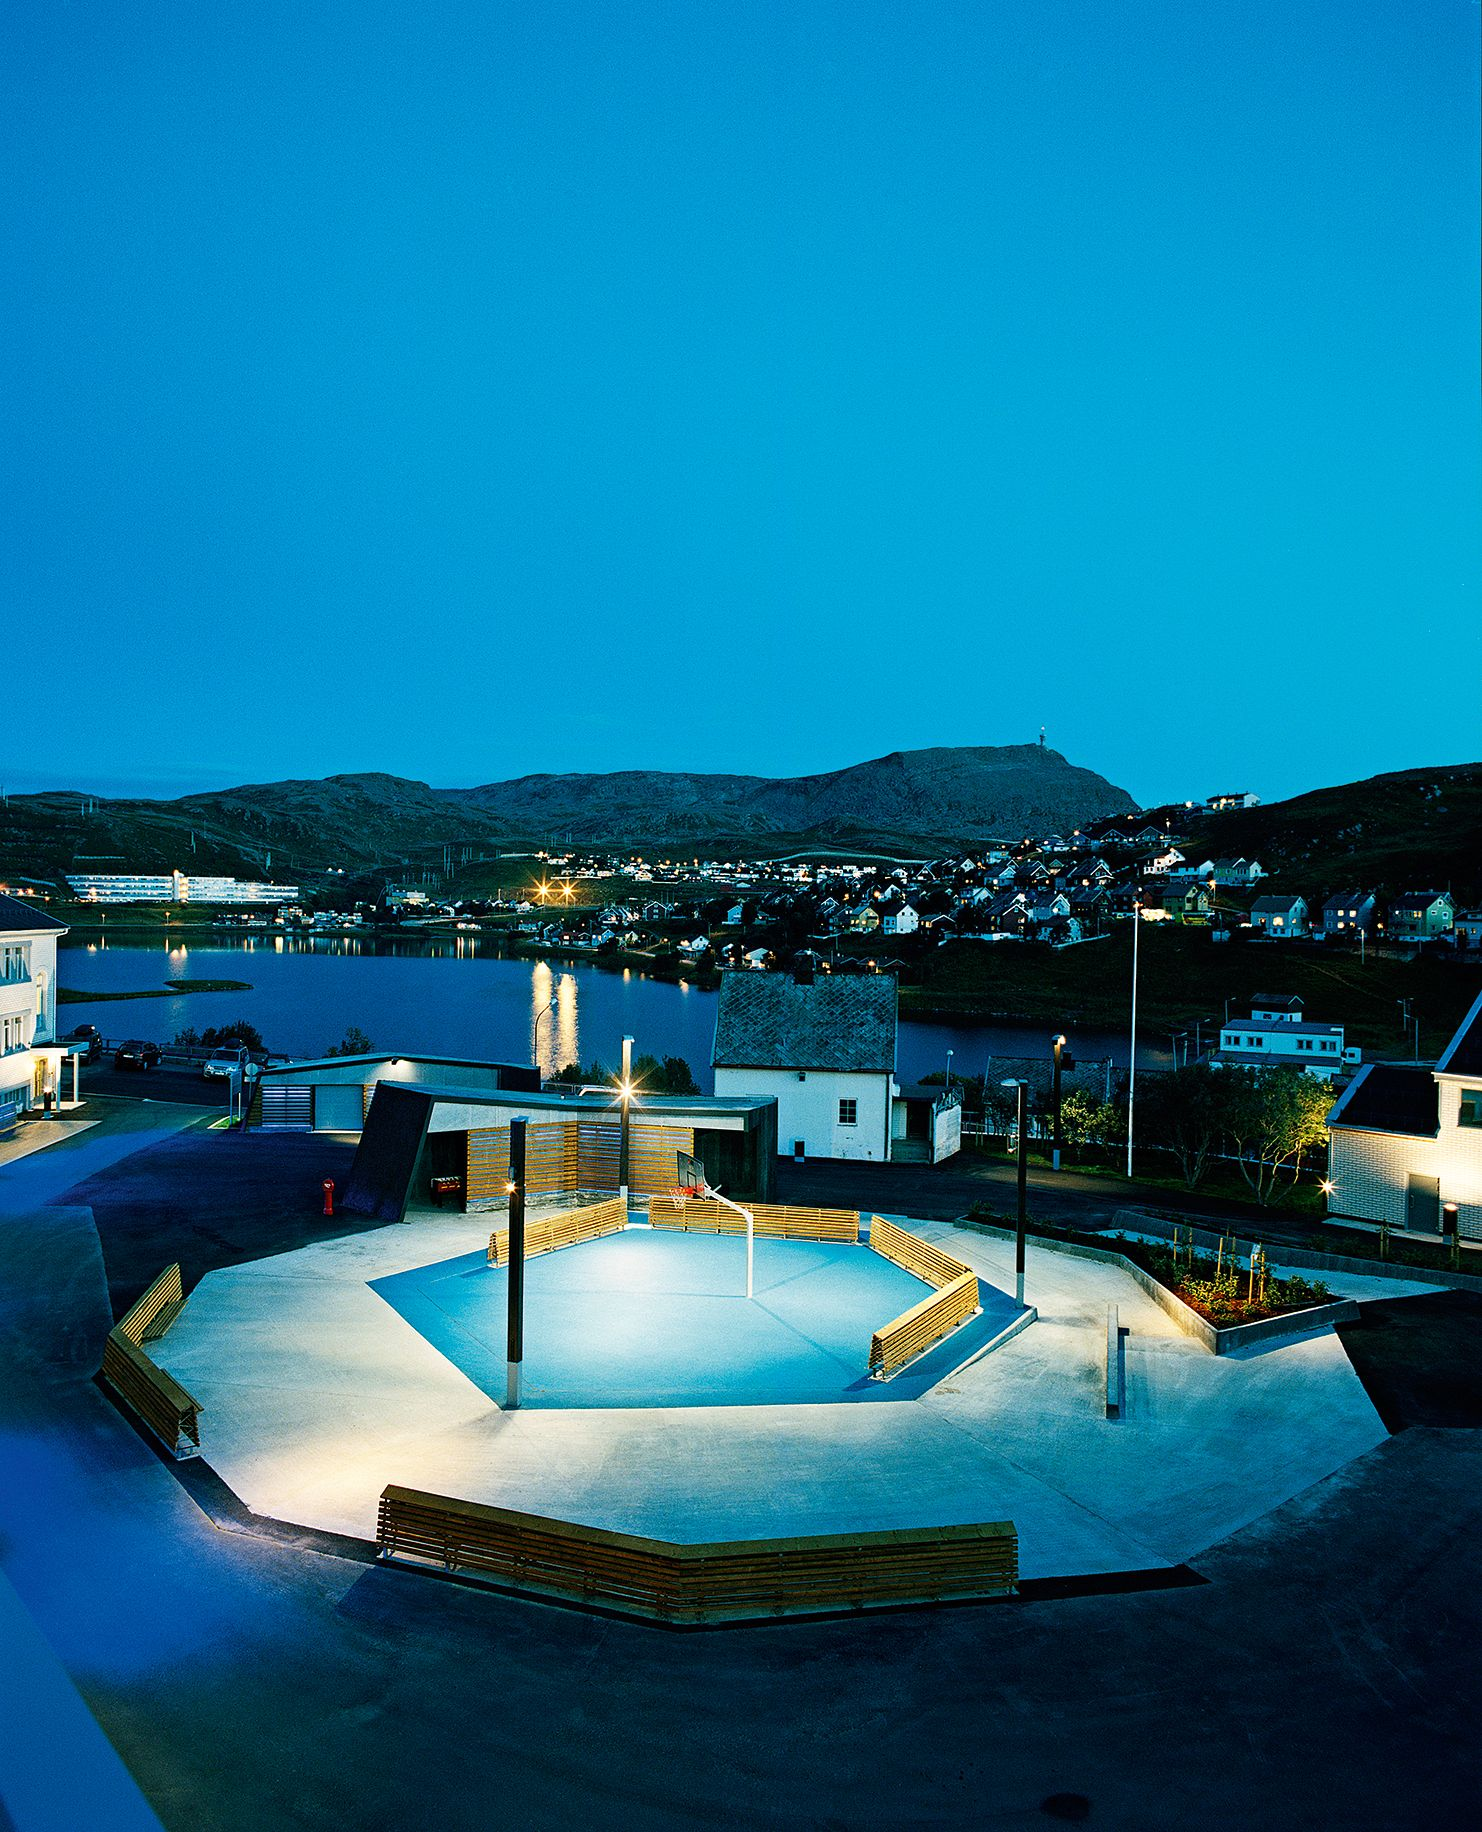 Breilia School, Hammerfest. Aurora Landskap AS, 2009. The project was part of a masterplan for outdoor lighting in Hammerfest, aimed at replacing the deylight experience during the dark months. Photo: Ivan Brodey